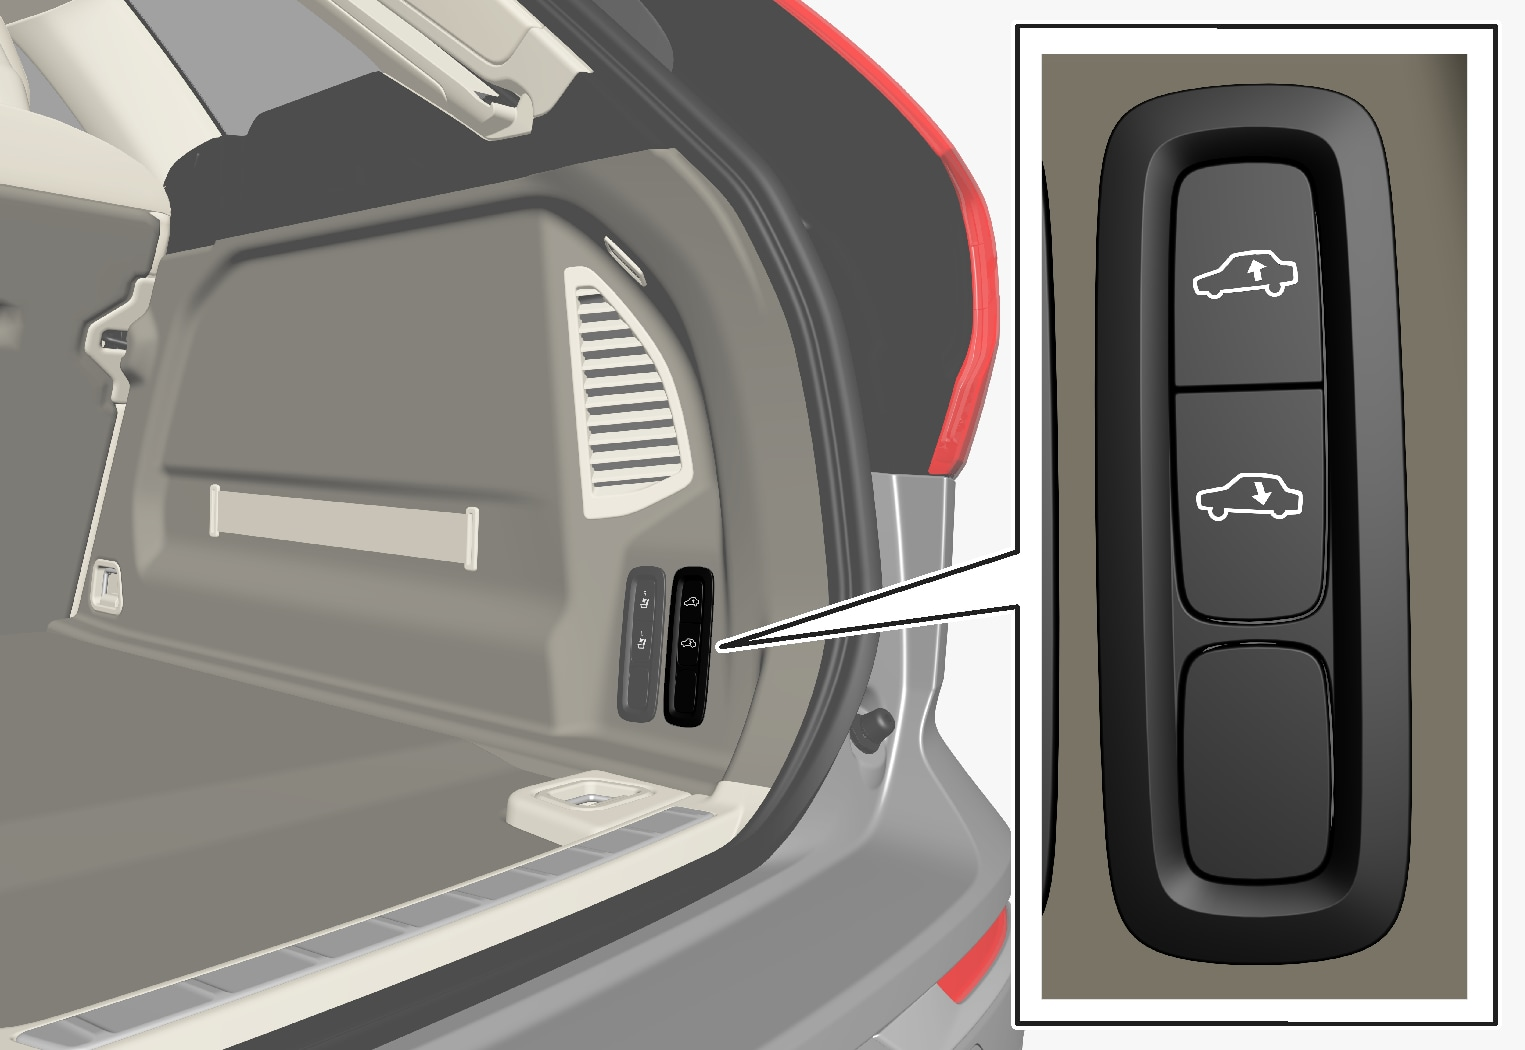 P5-1717-XC60-levelling switches in trunk